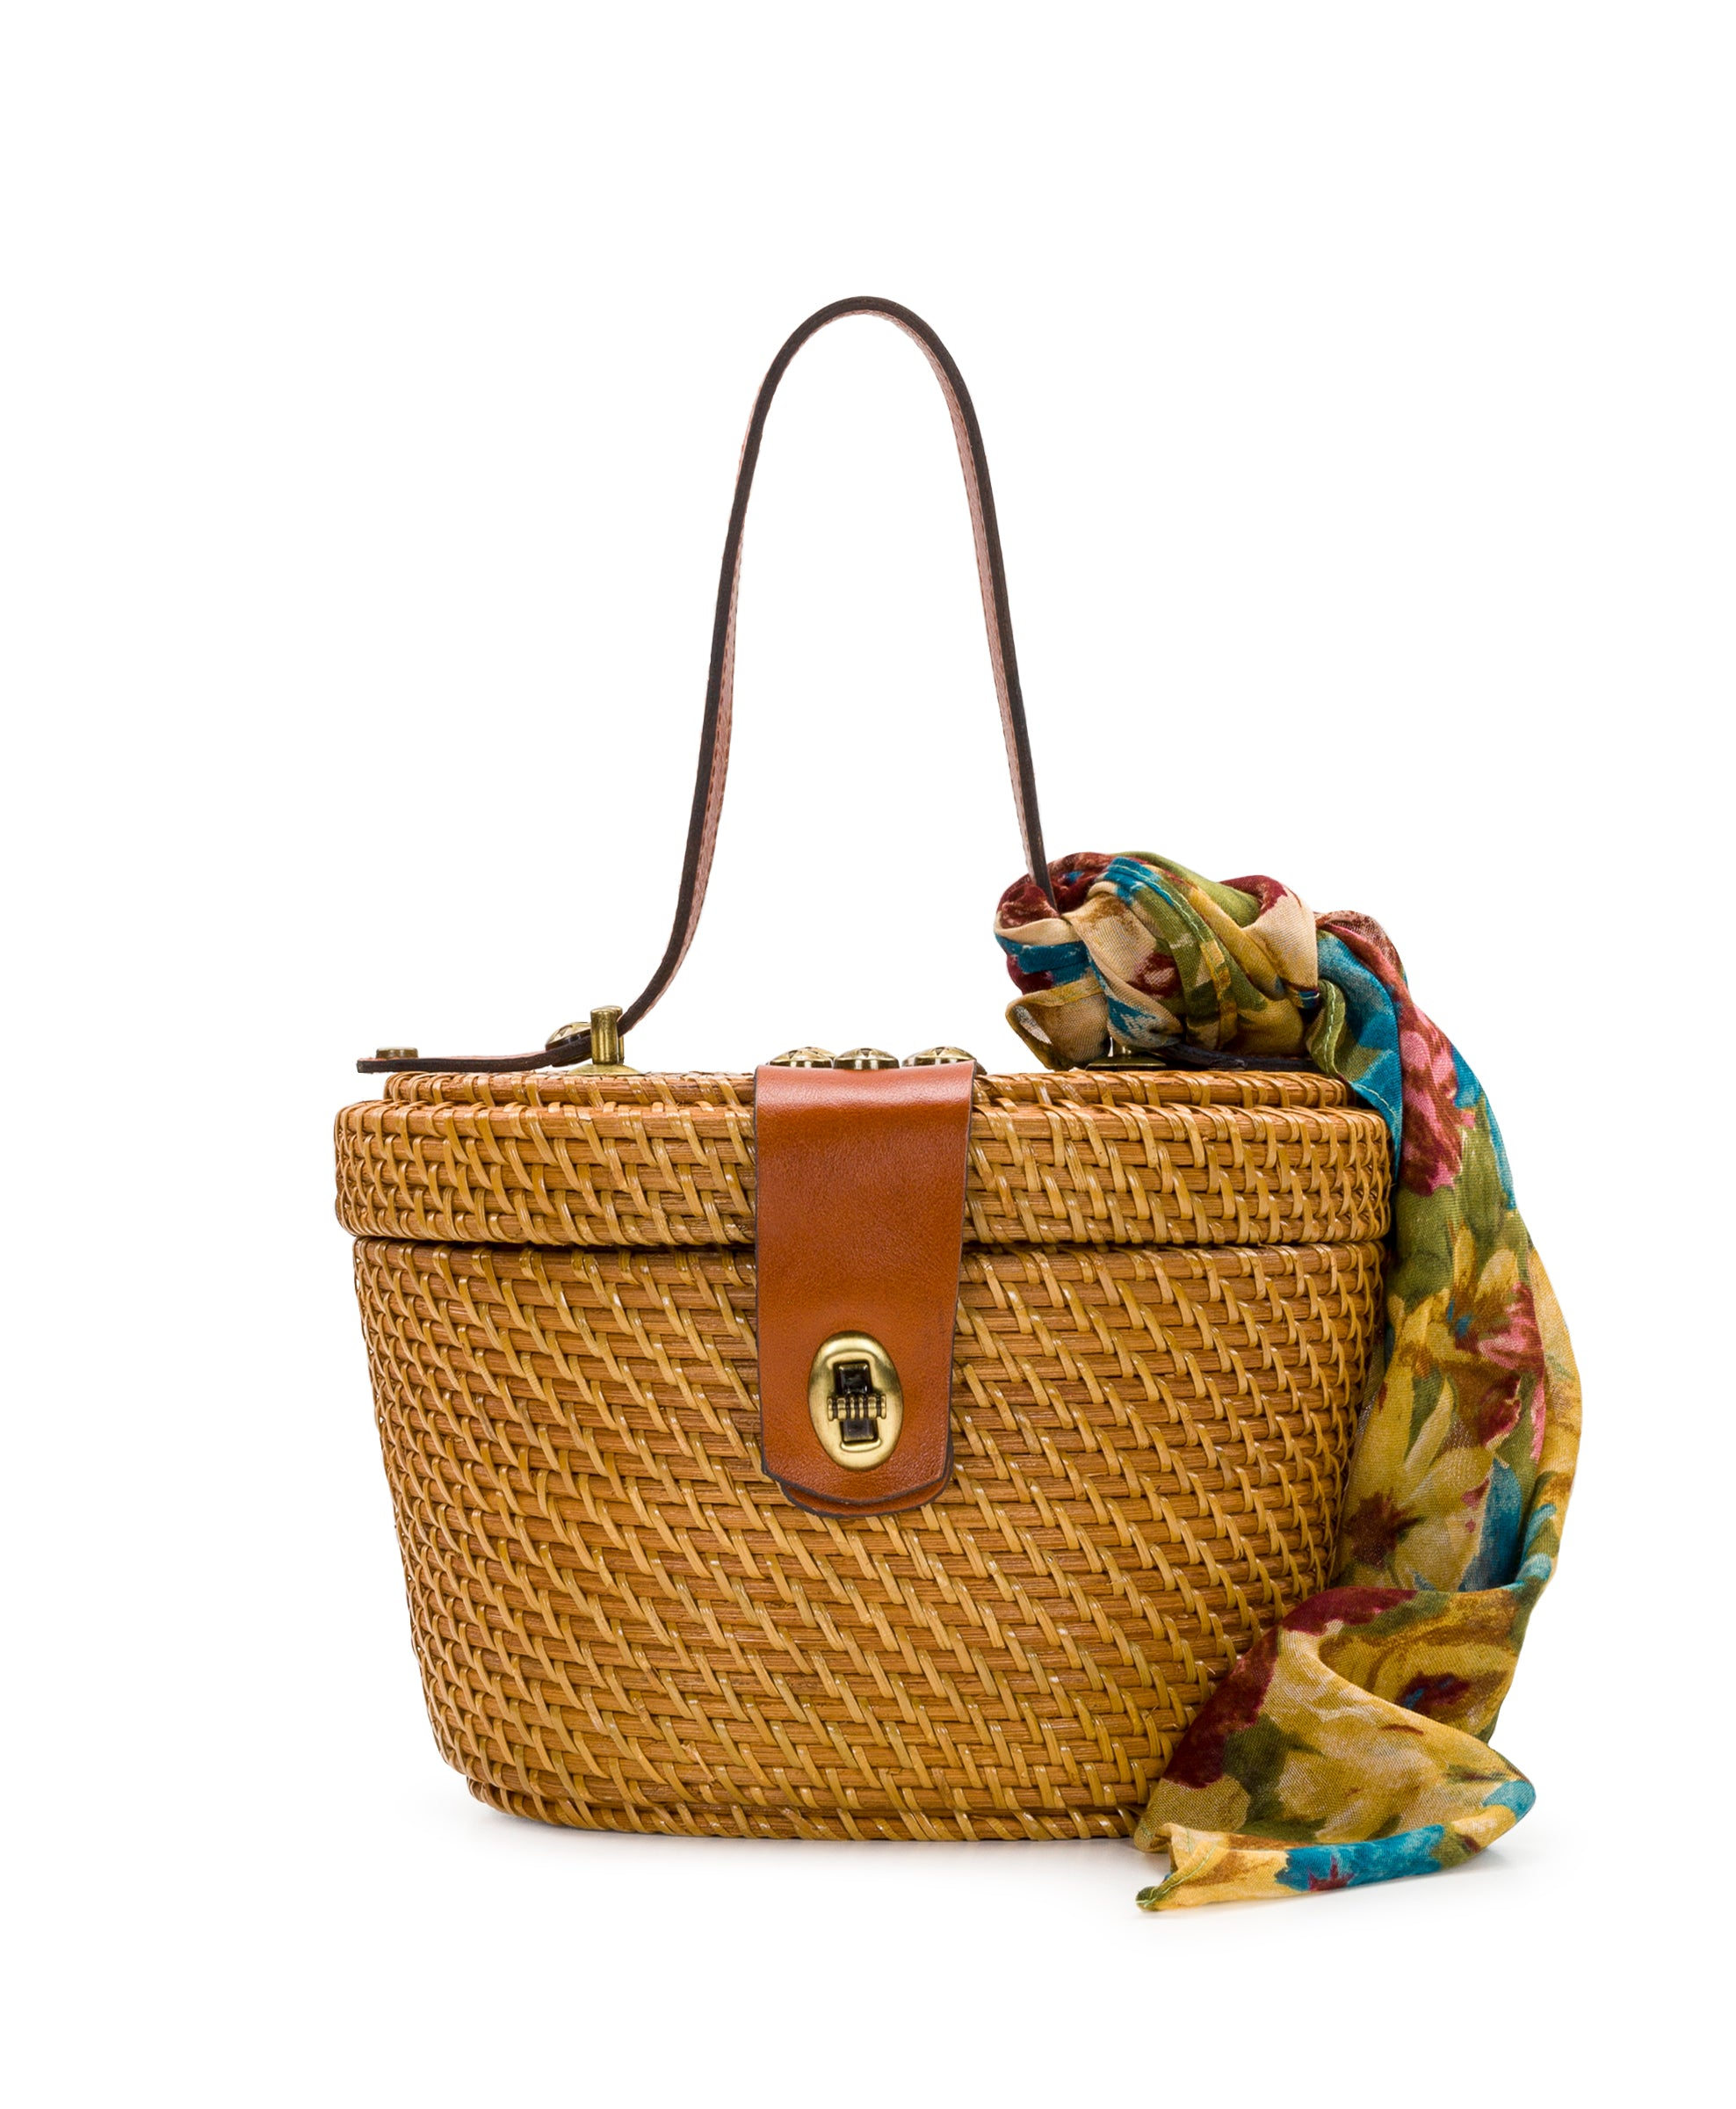 Caselle Basket - Tan & Fresco Bouqet Scarf